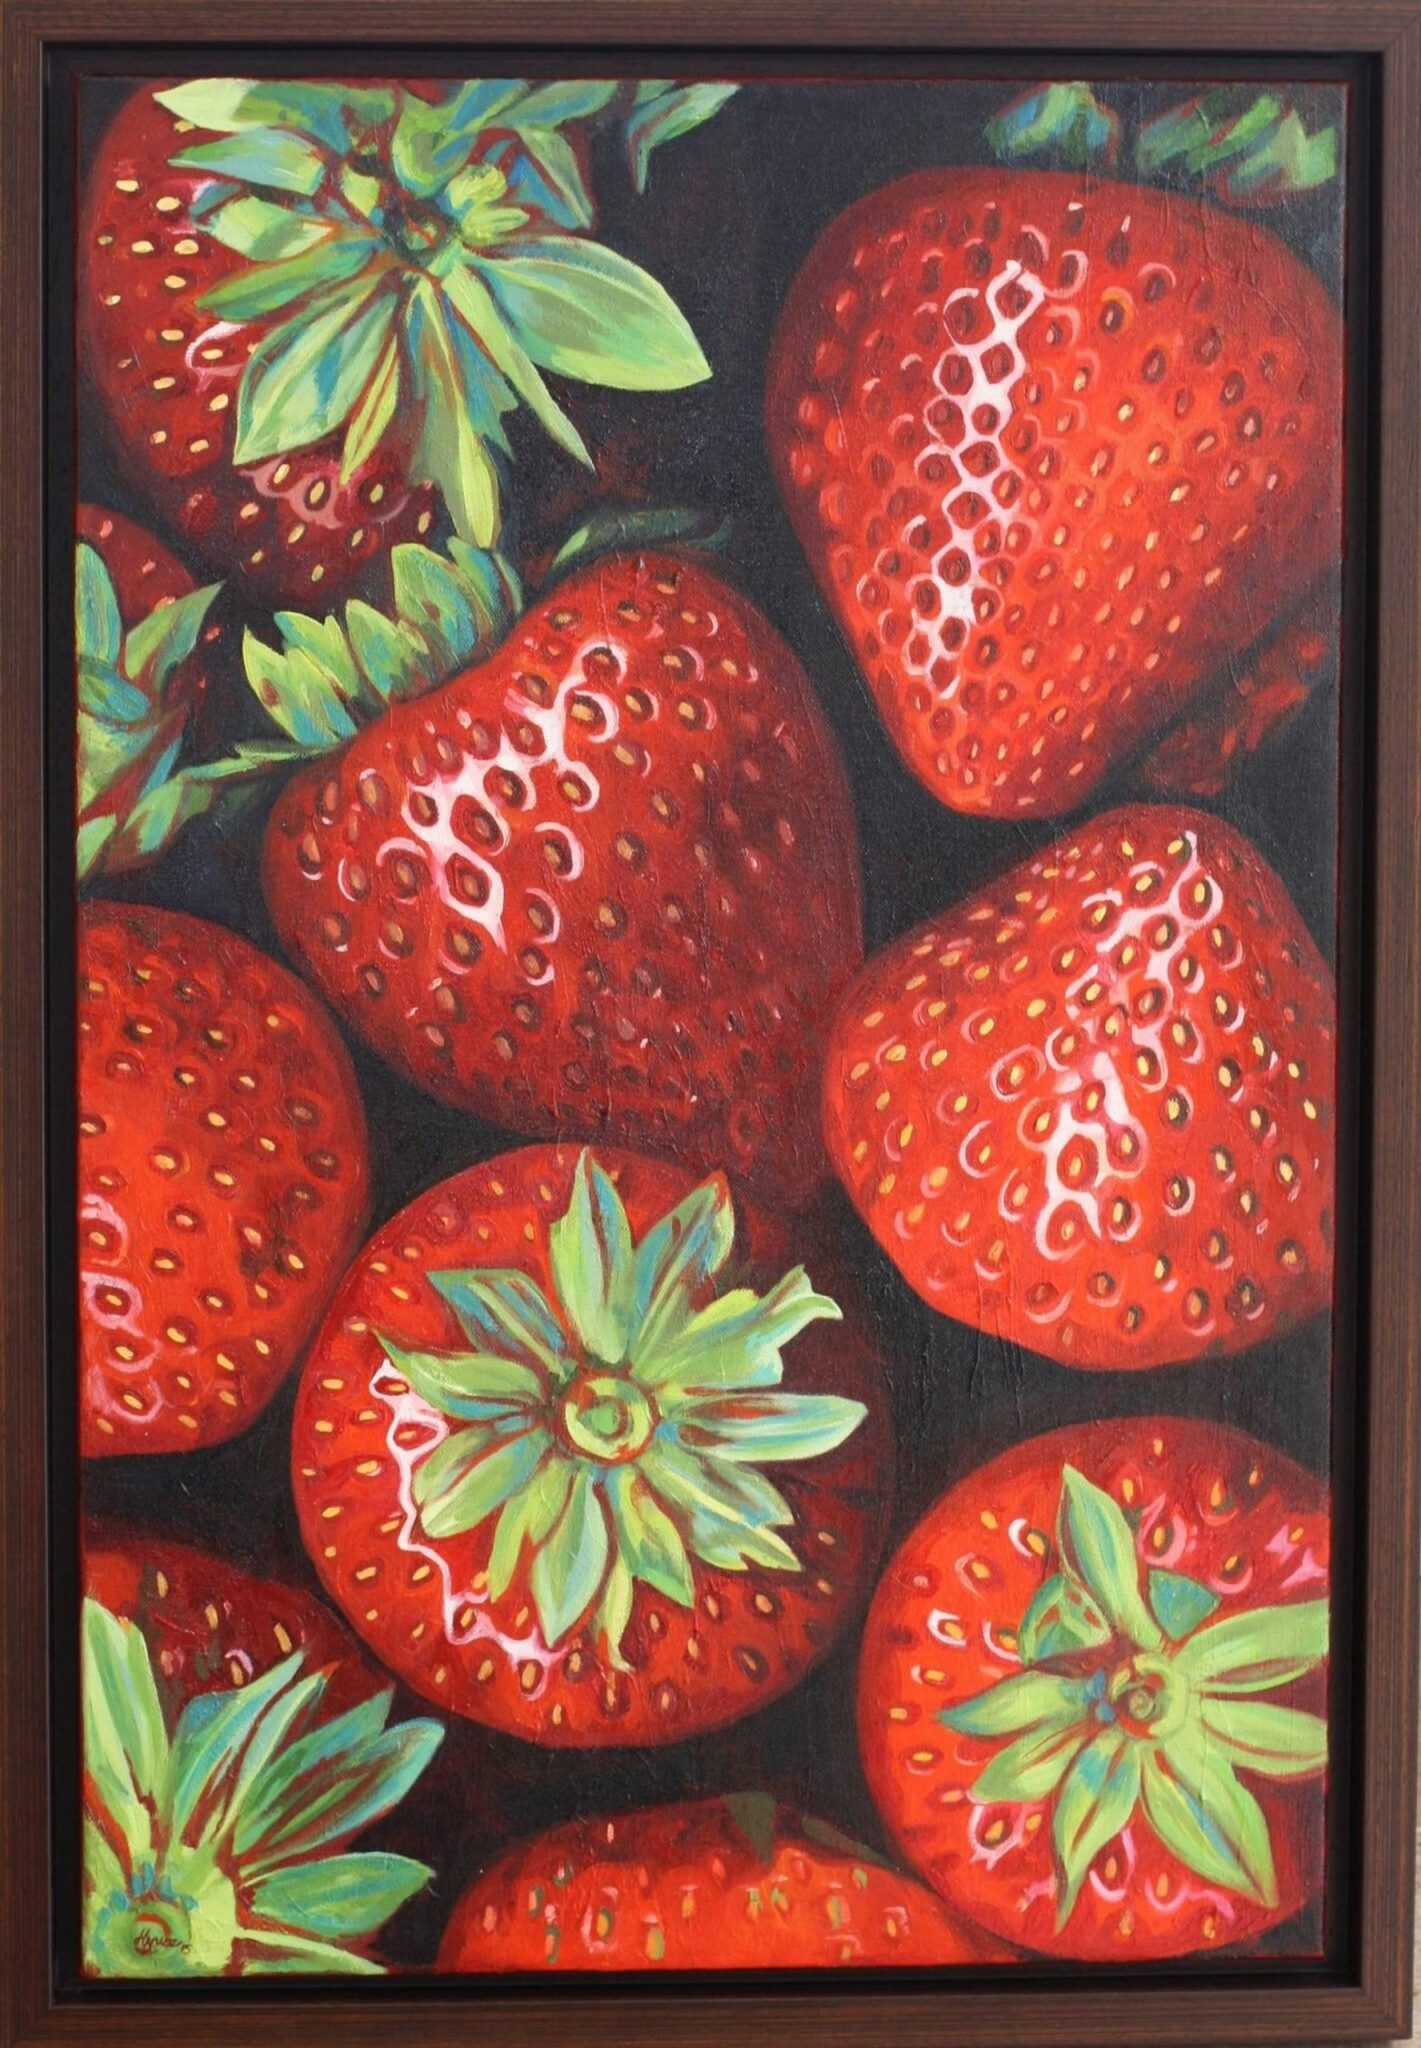 Strawberries XII